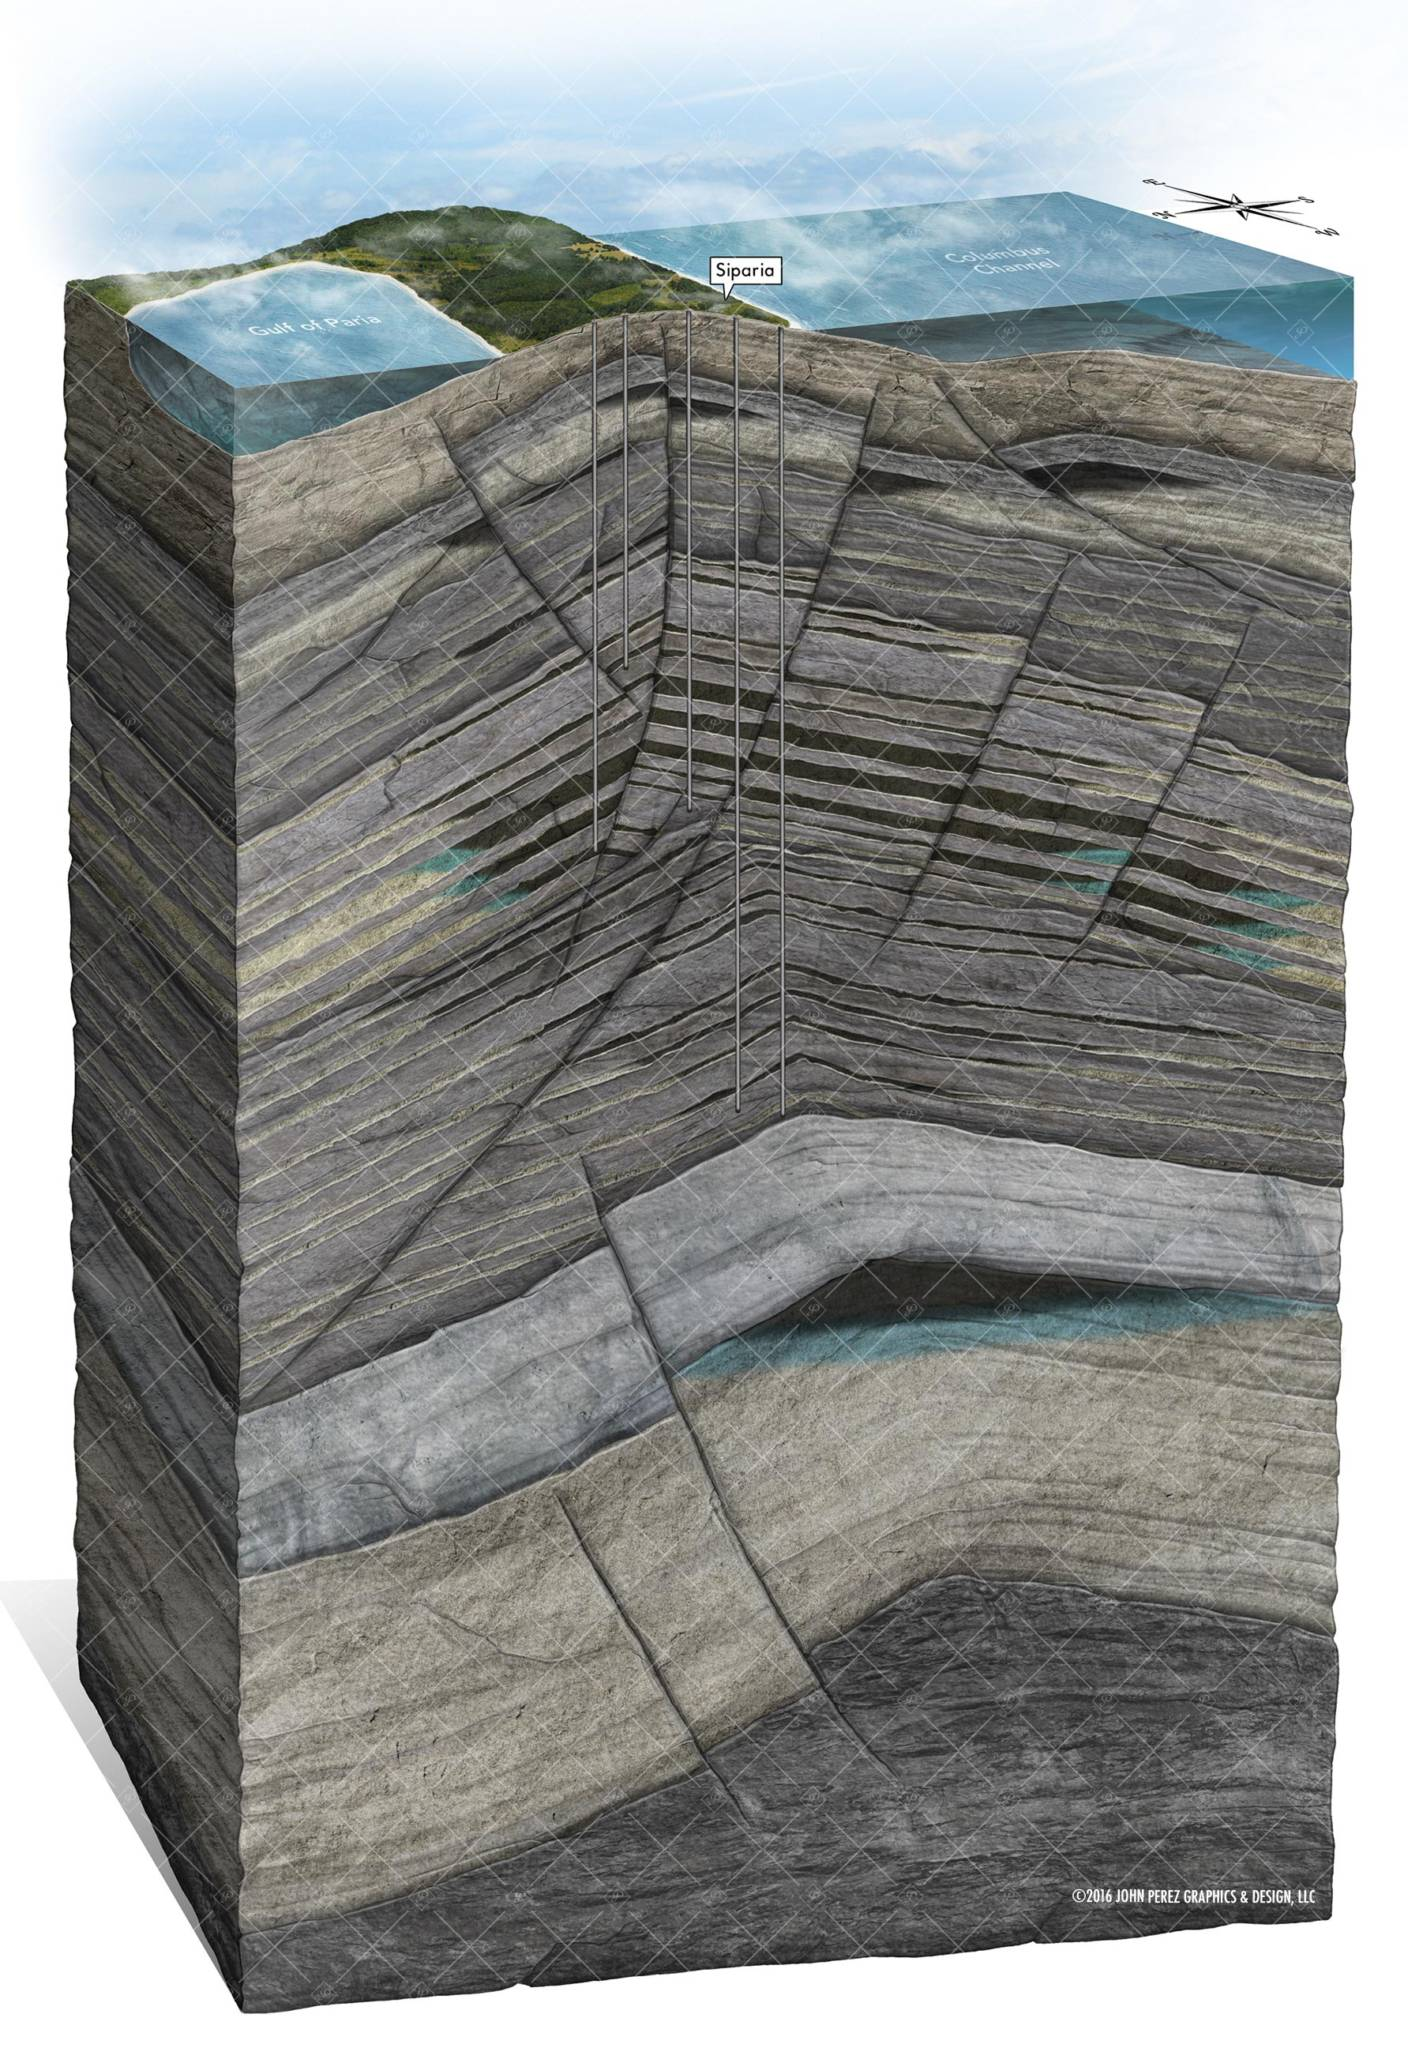 Multiple Fault Block Trapped Hydrocarbons, drilling geology, oil and gas graphics, oil and gas schematics, oil and gas graphics, john perez graphics, oil and gas illustration